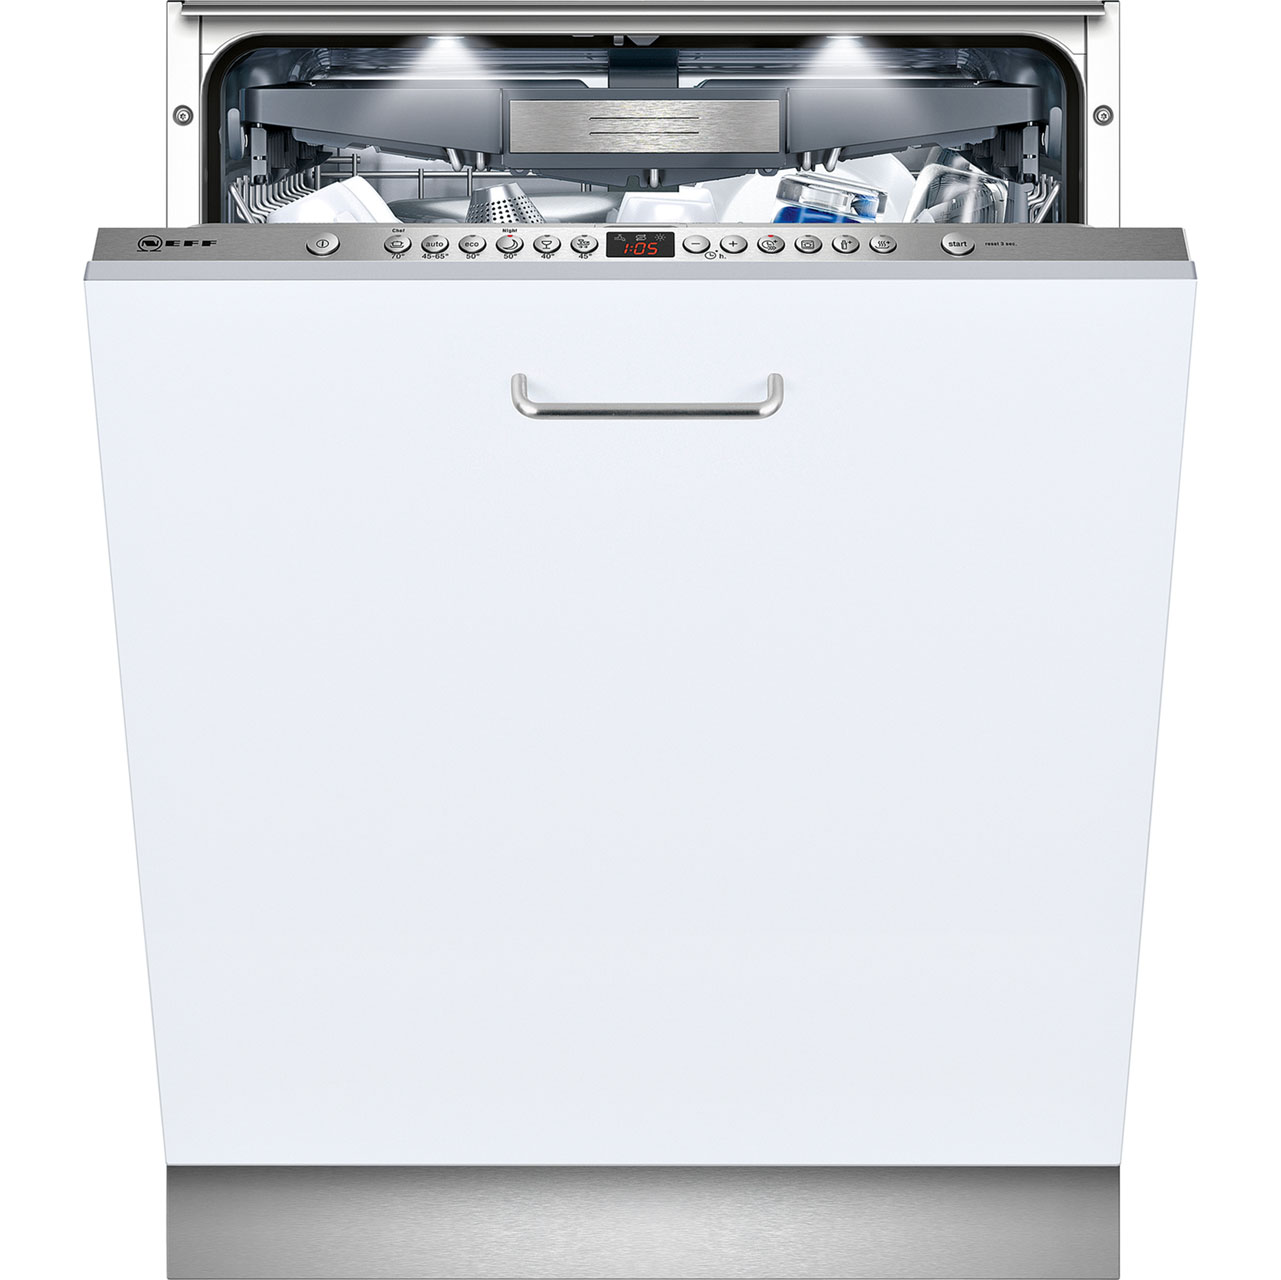 Neff S51M66X0GB Fully Integrated Standard Dishwasher - Stainless Steel